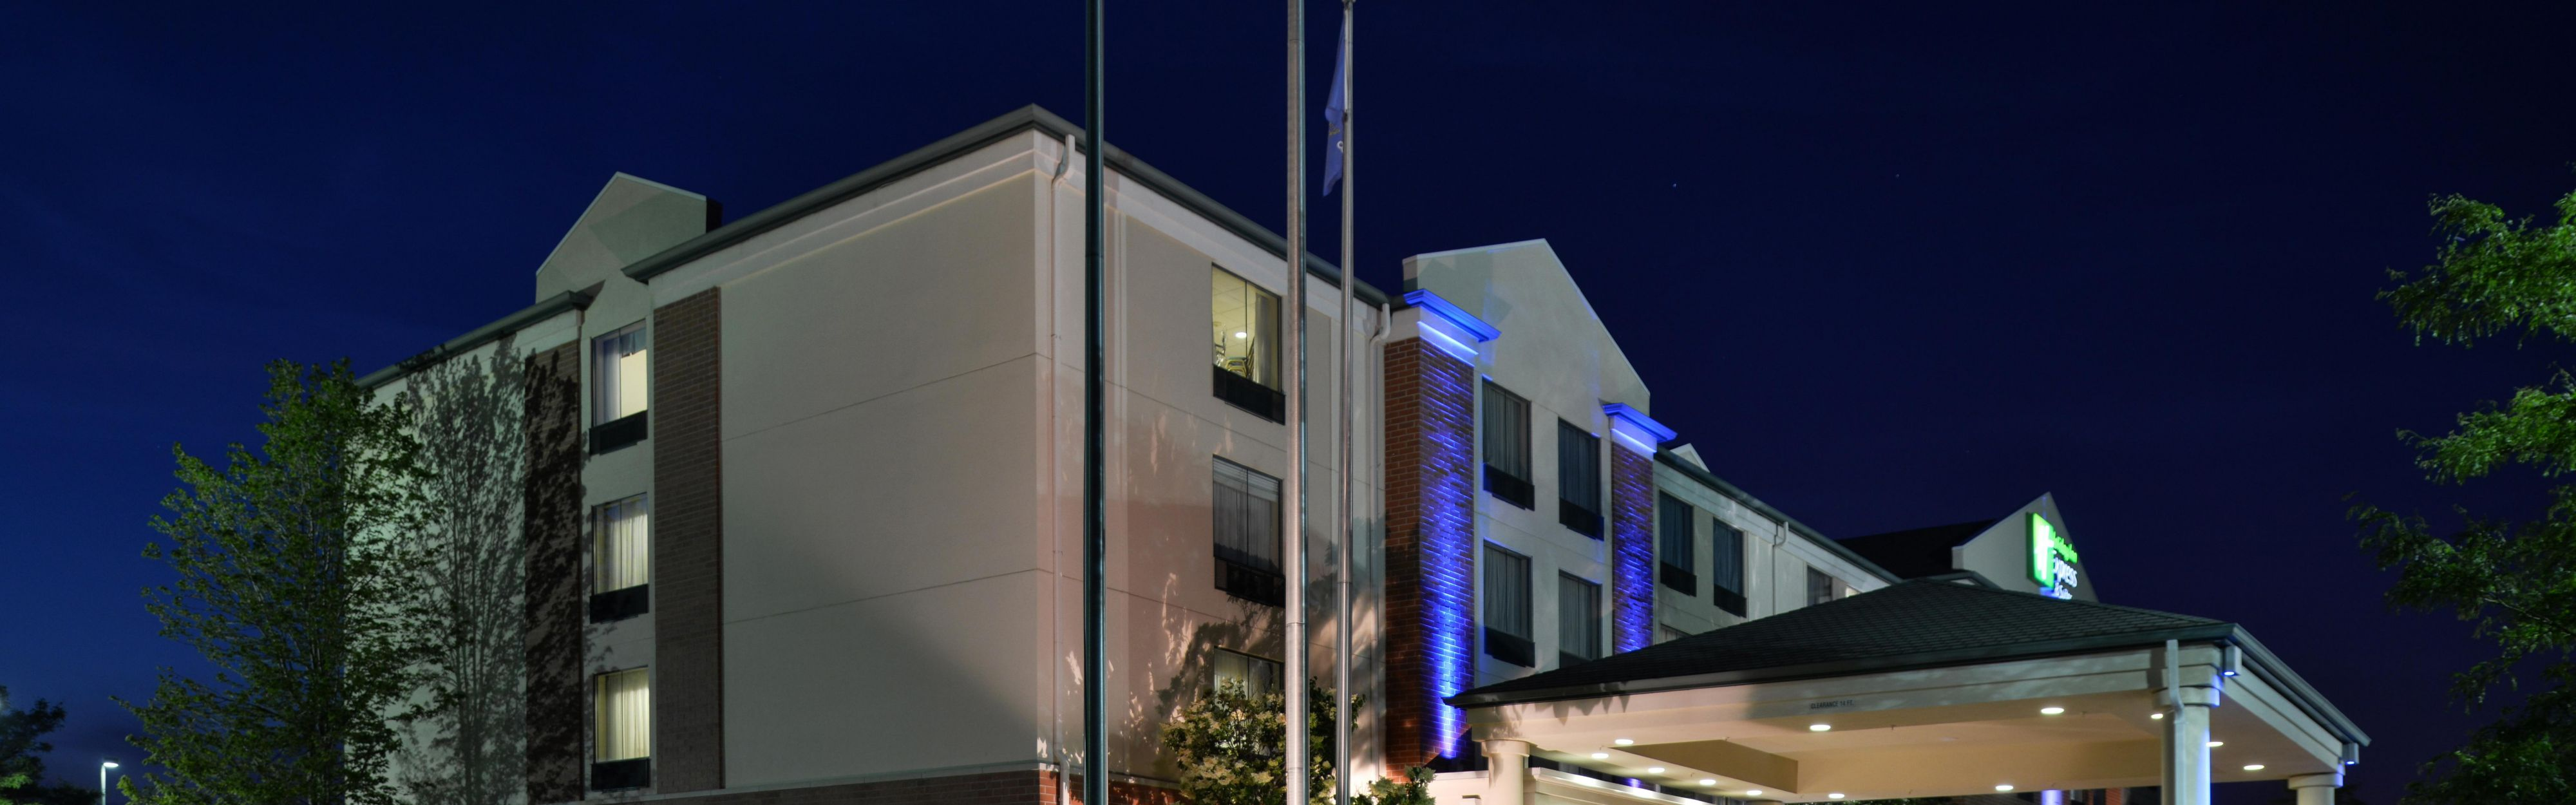 Holiday Inn Express & Suites Milwaukee-New Berlin image 0